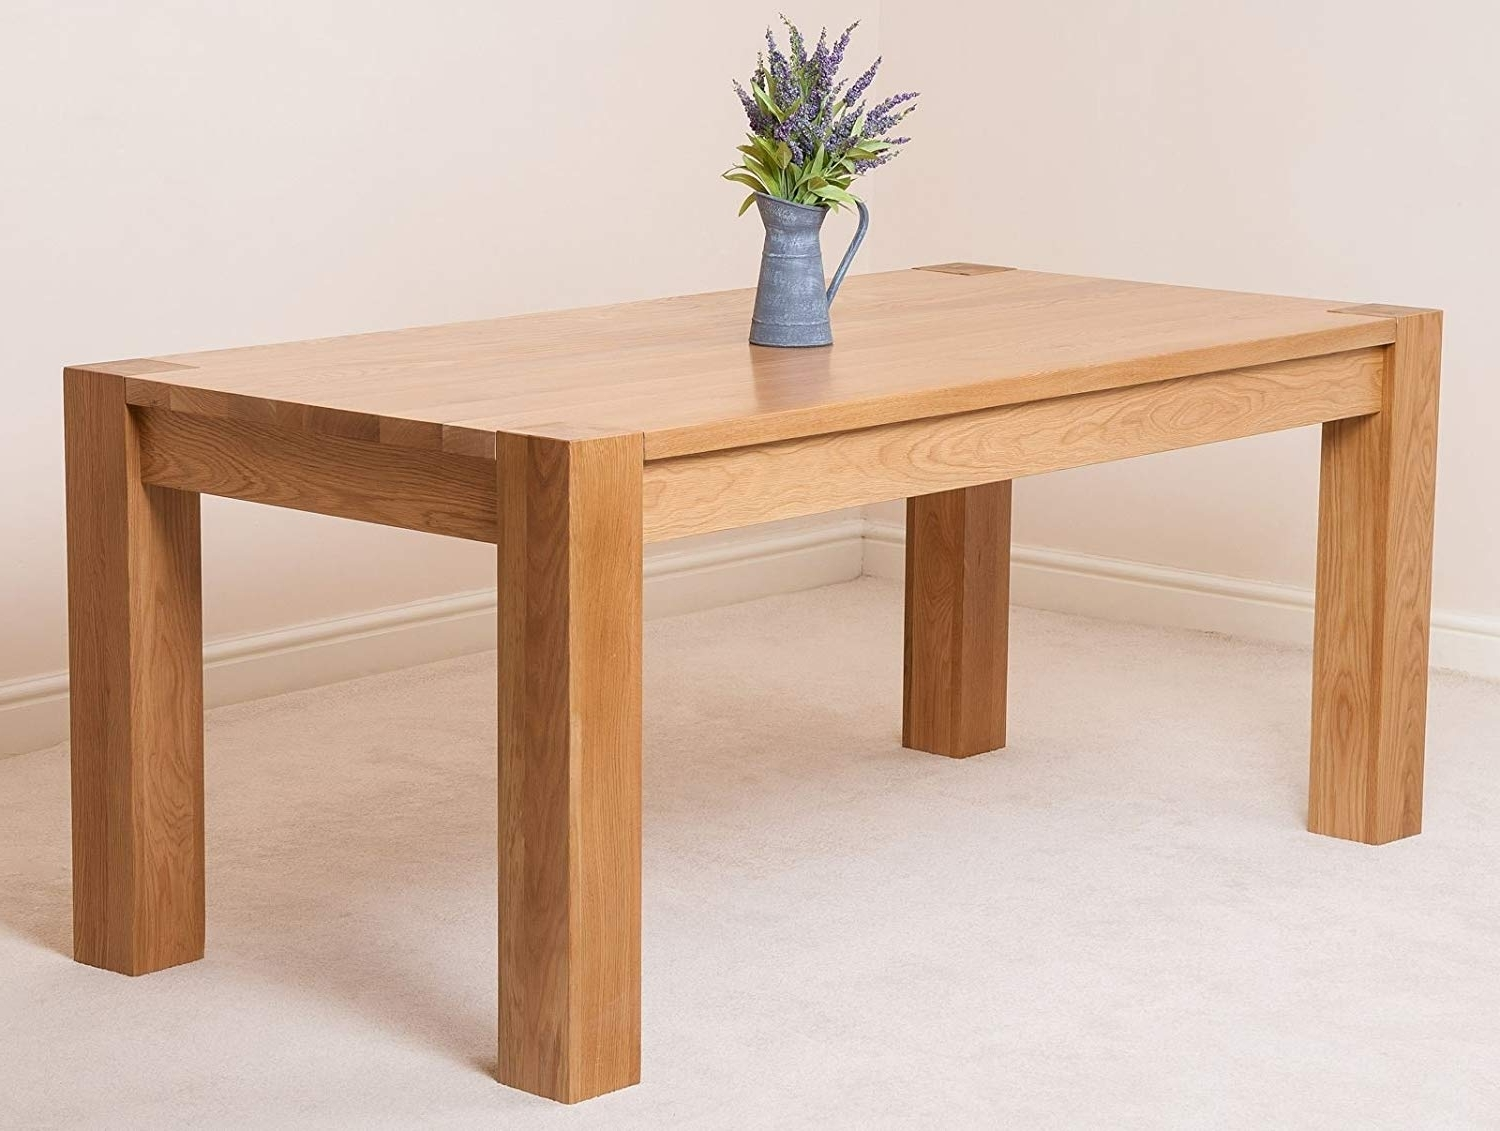 Solid Oak Dining Tables With Popular Kuba Chunky Solid Oak 180 X 90 X 78 Cm Dining Room Kitchen Table (View 5 of 25)